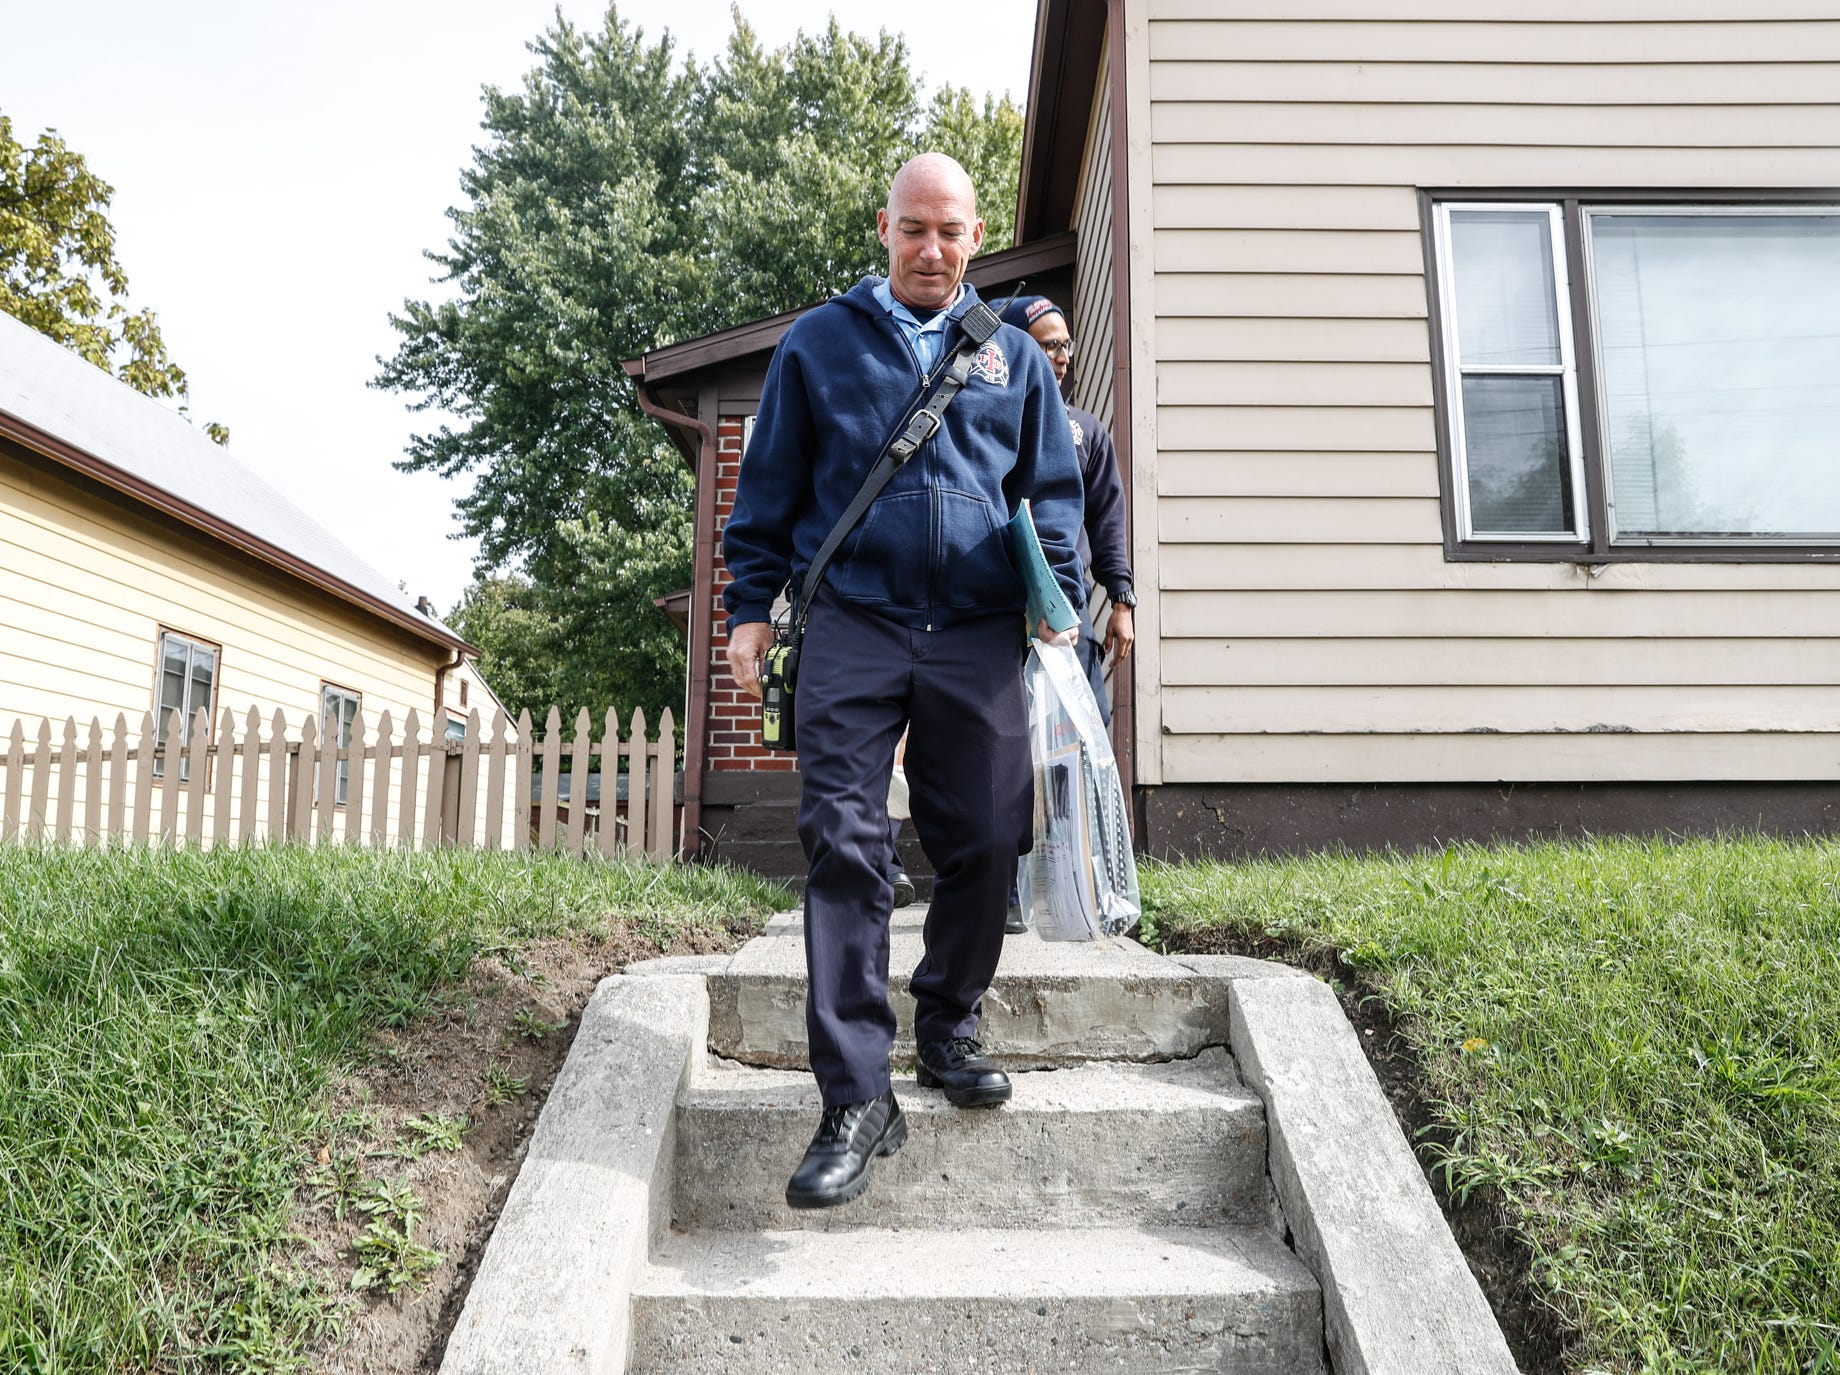 IFD Firefighters Tim Rumple, front, and Donovan Abernathy, right, go door to door delivering safety materials including smoke alarms during IFD's home safety blitz in Indianapolis for National Fire Prevention Week, on Friday, October 12, 2018. IFD chose the area around IFD Station 15 which experienced 9 residential fires in 2018 for the blitz.